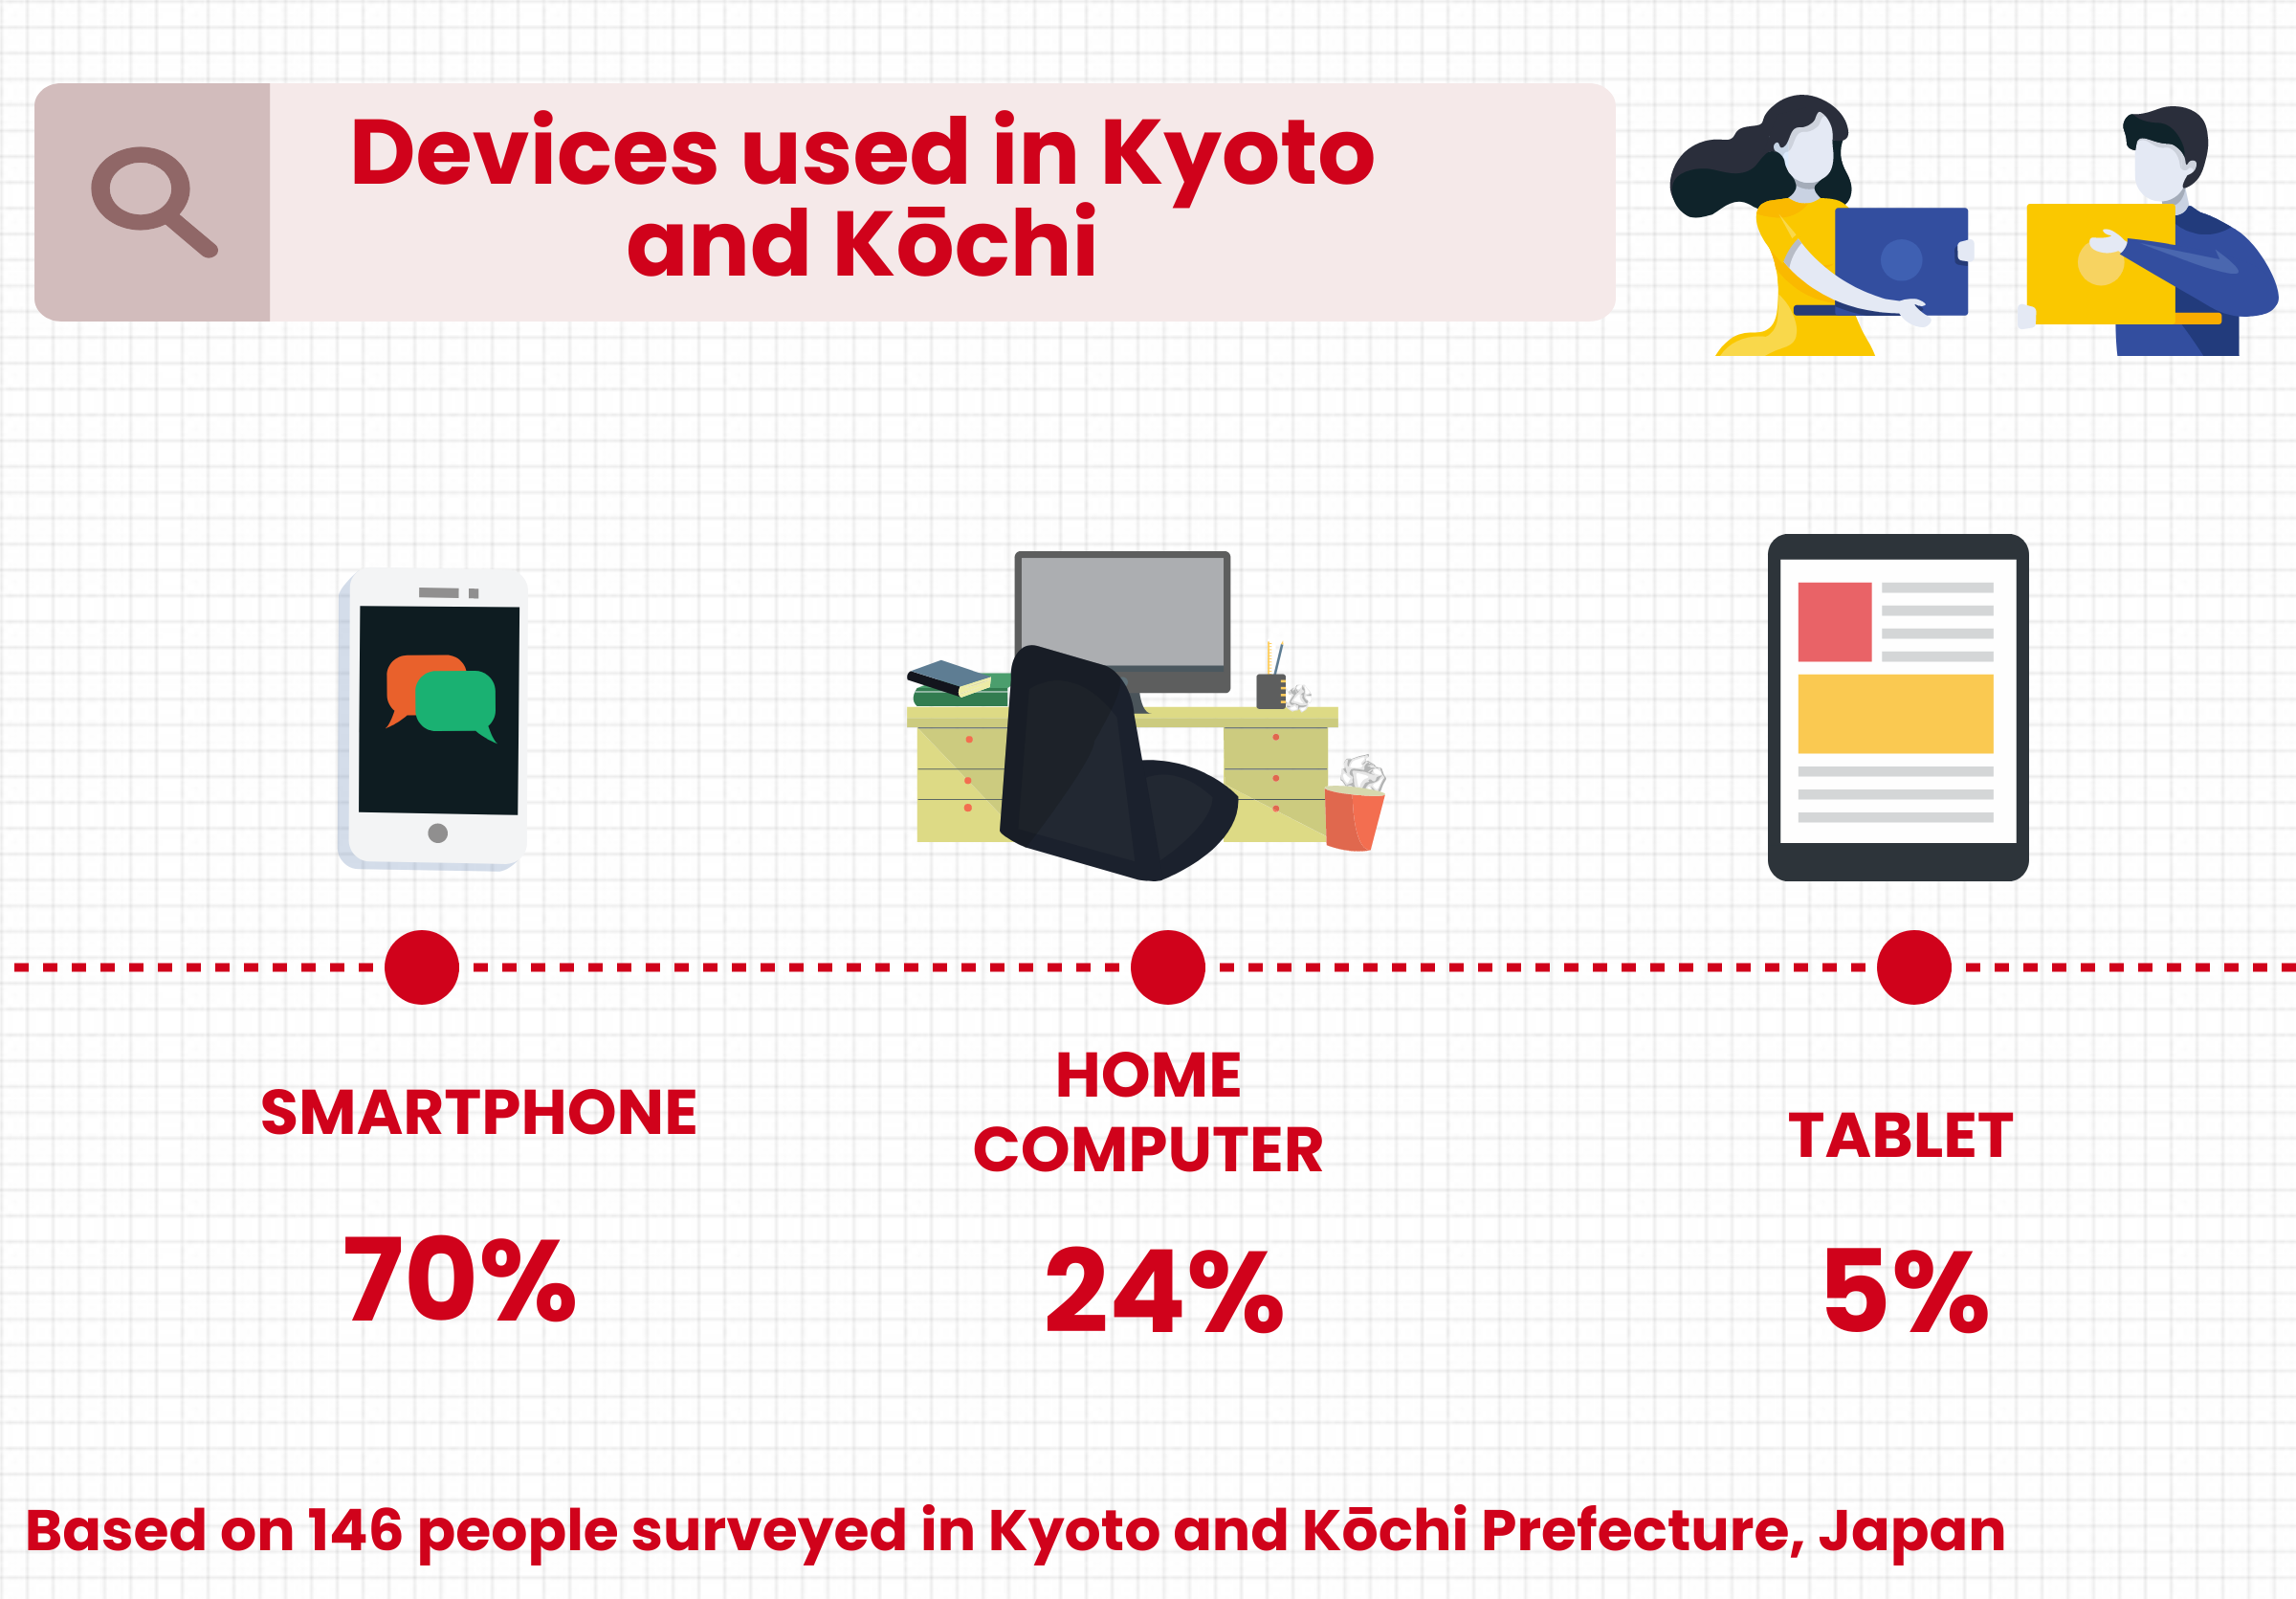 Graphic based on 146 people surveyed by Laura Haapio-Kirk in Kyoto and Kochi prefecture in Japan which is entitled 'Devices used in Kyoto and Kochi' and shows two figures near the title banner each holding a laptop. Below the title banner, devices are shown along a punctuated line, shown from most used to least used: the smartphone is used by 70% of Laura's participants while the home computer is used by 24% and the tablet is used by 5% of users.